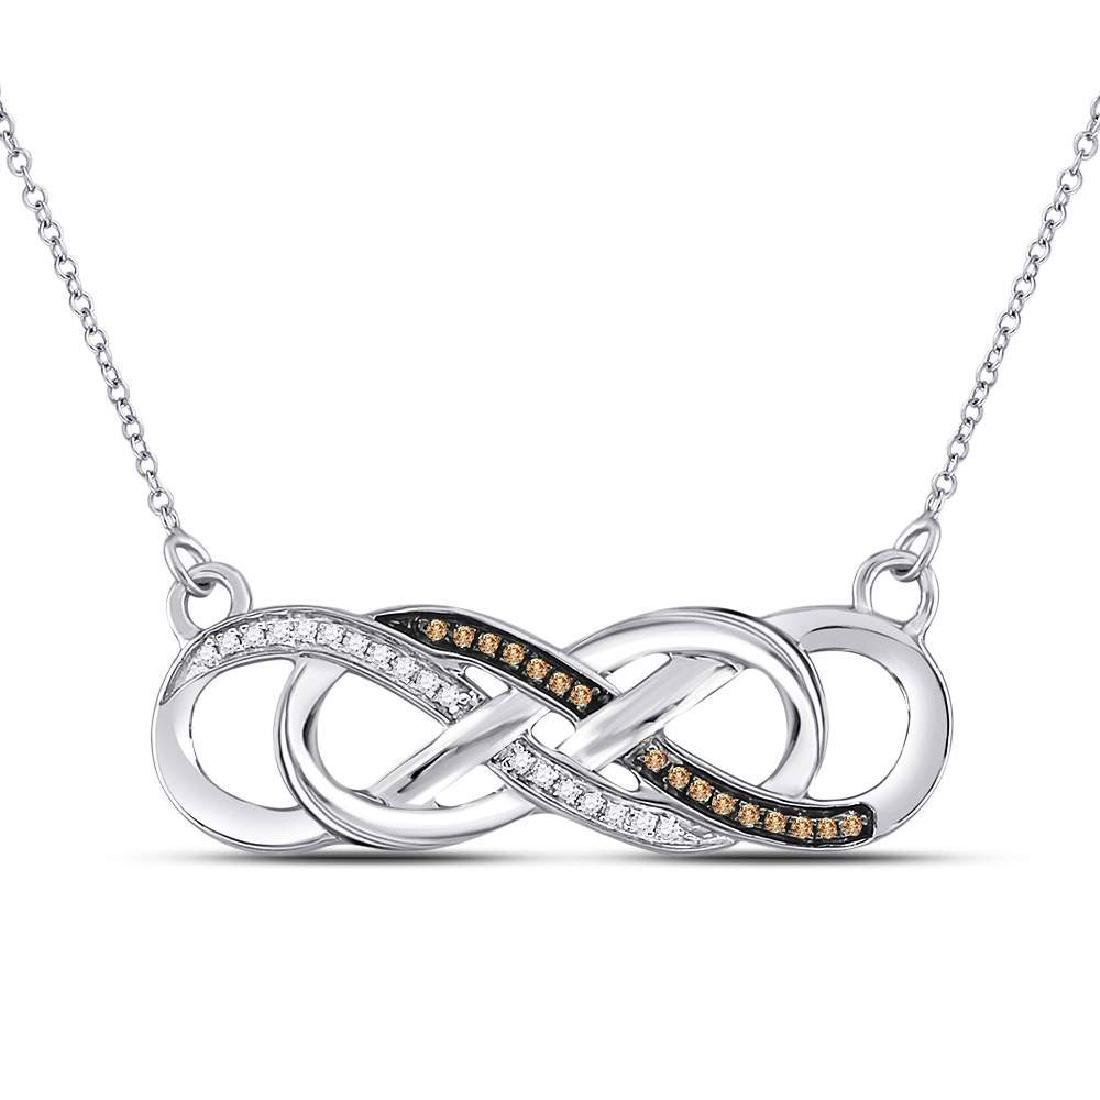 10KT White Gold Round Black Diamond Infinity Pendant Necklace 0.48 Cttw